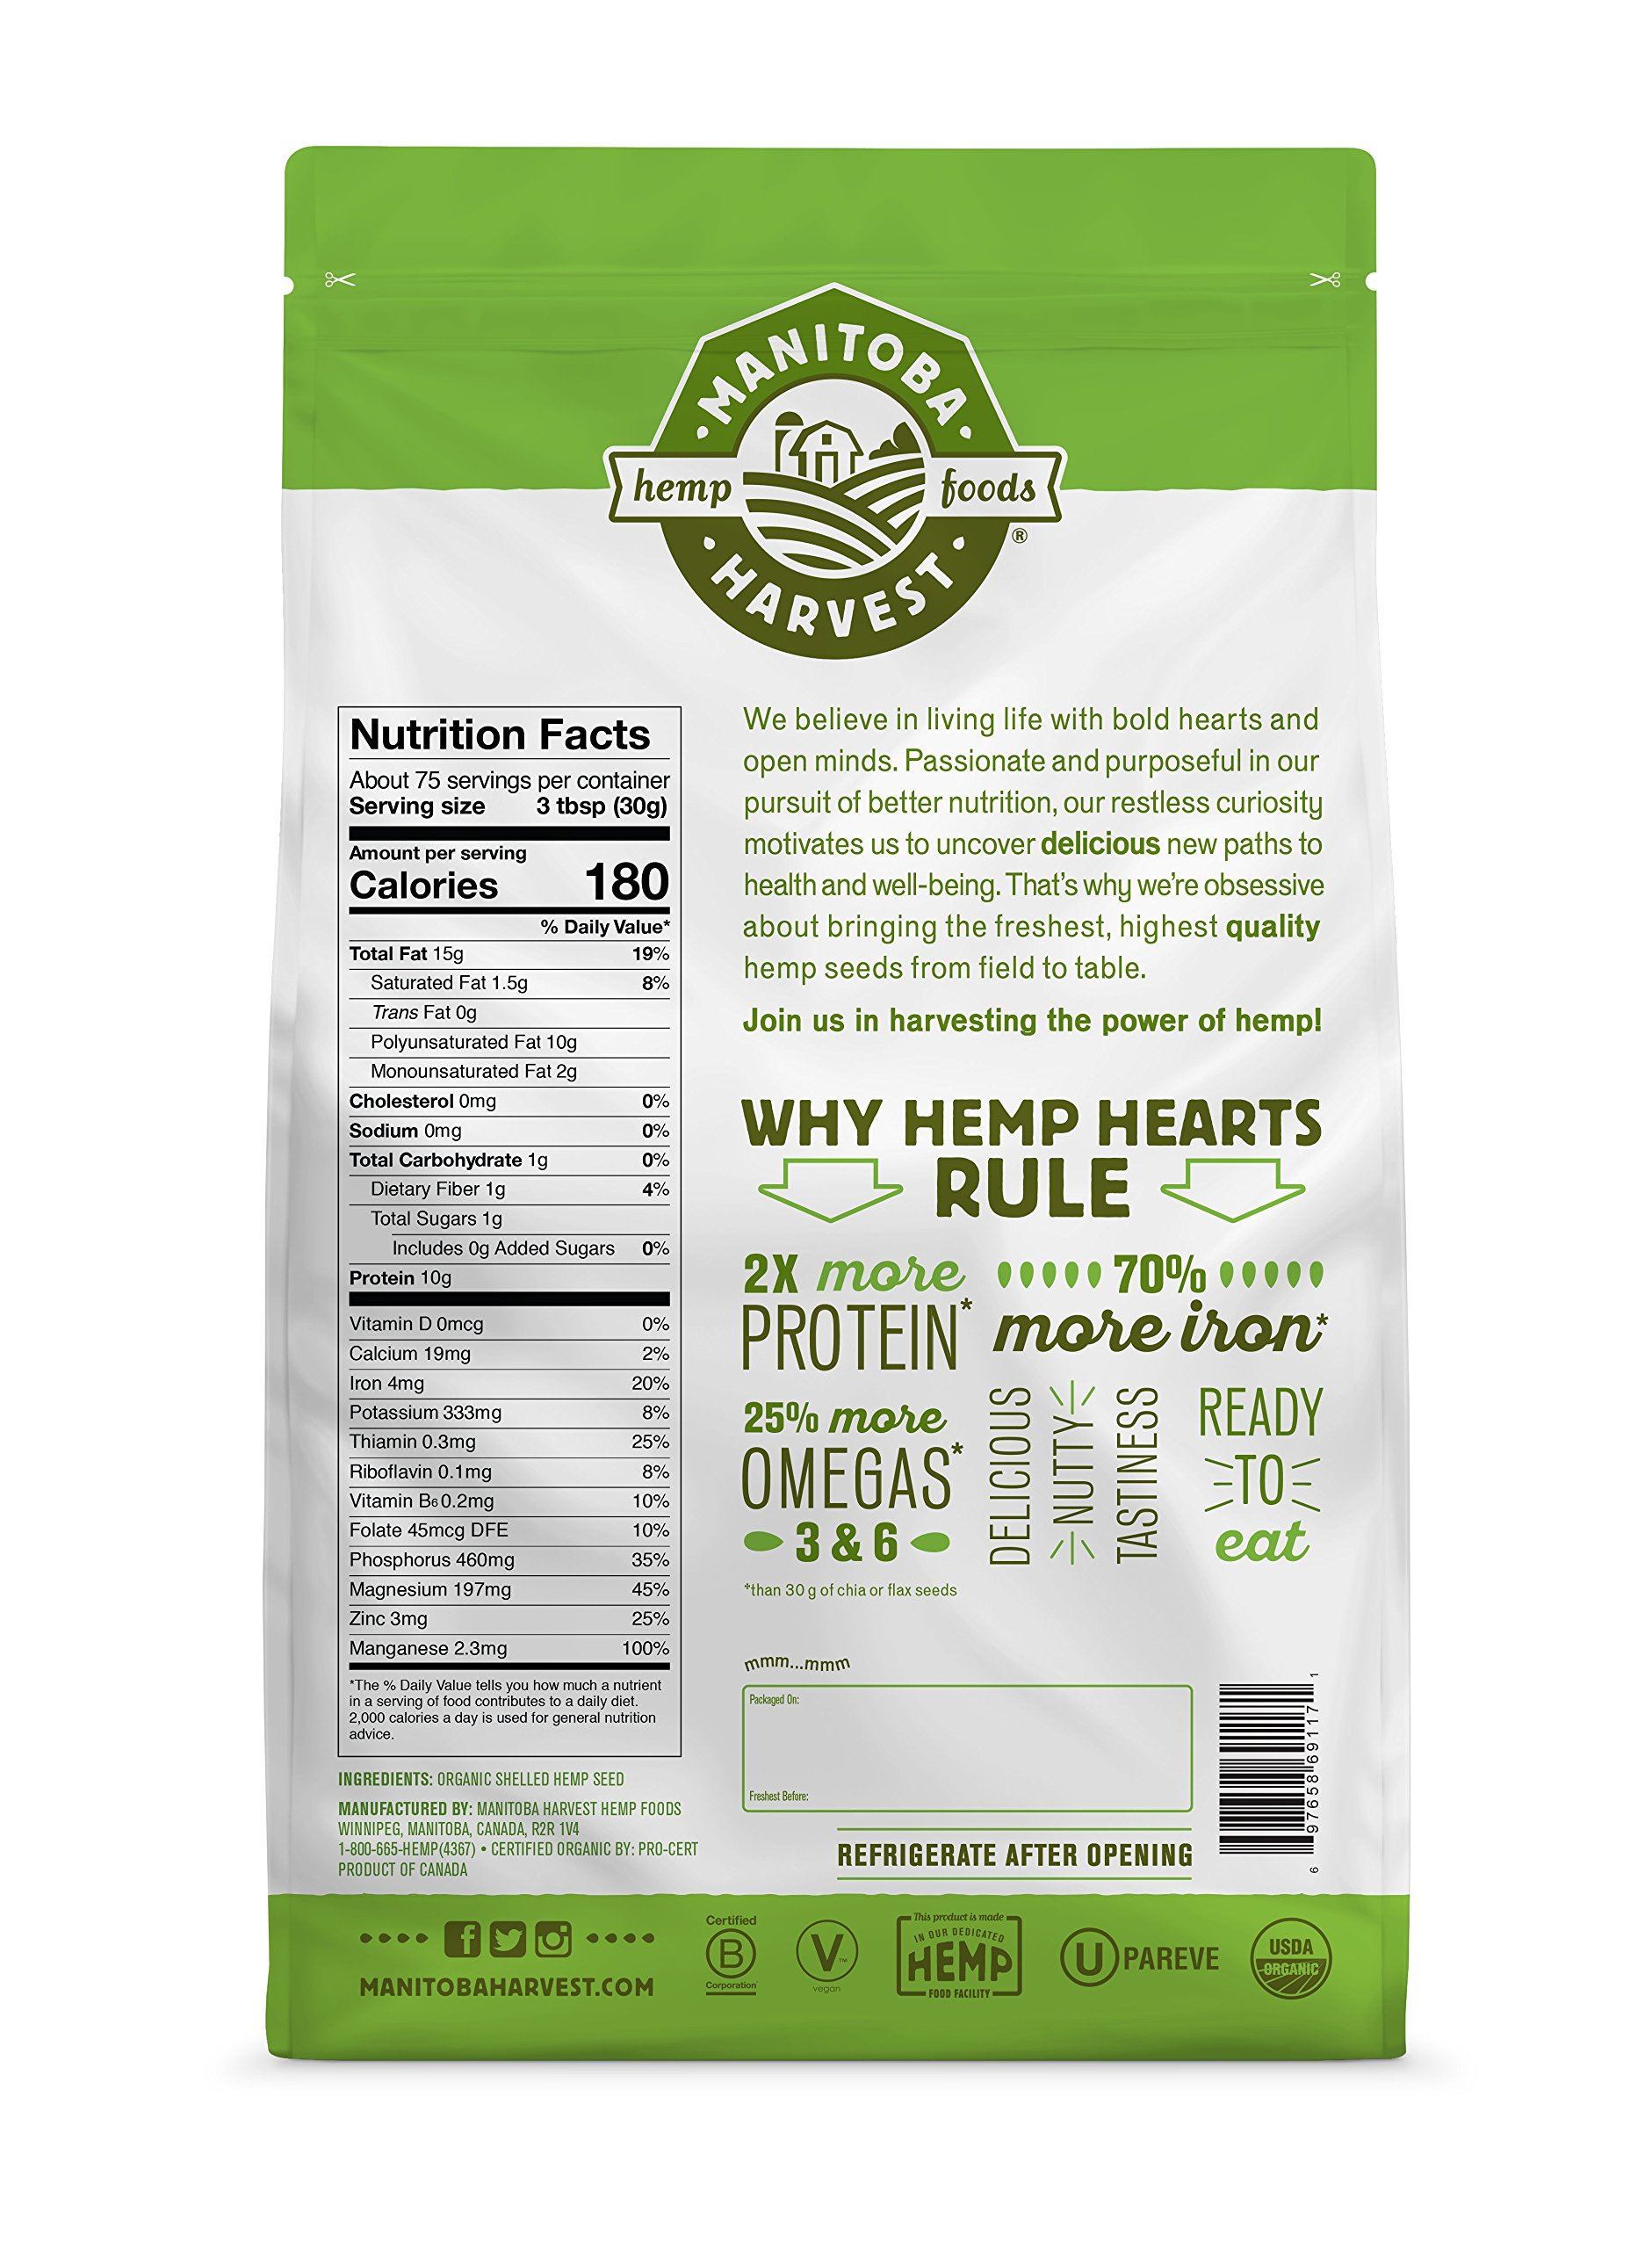 Manitoba Harvest Organic Hemp Hearts Raw Shelled Hemp Seeds, 5lb; with 10g Protein & 12g Omegas per Serving, Non-GMO, Gluten Free by Manitoba Harvest (Image #2)